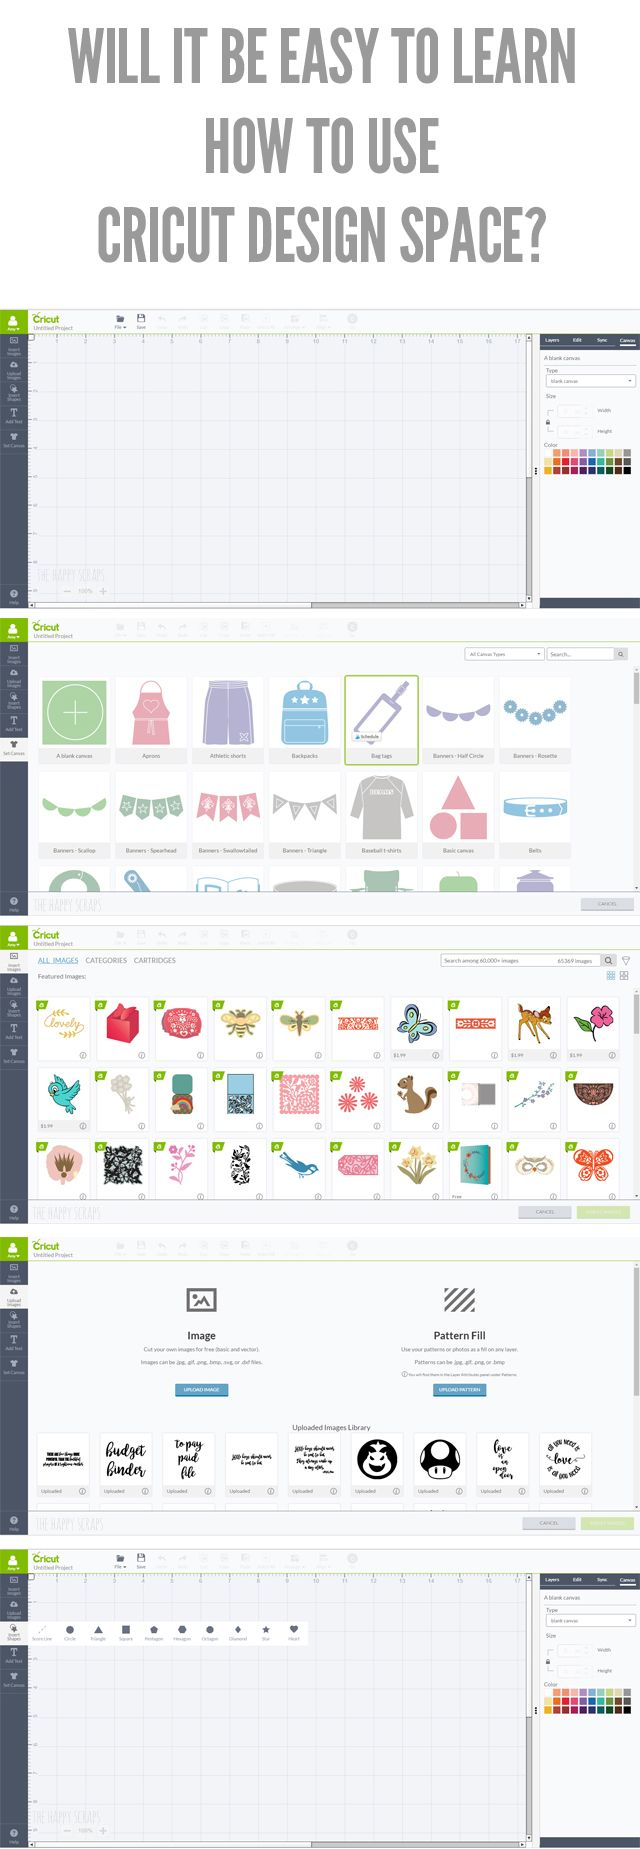 Will It Be Easy To Learn How To Use Cricut Design Space? Yes! Learn